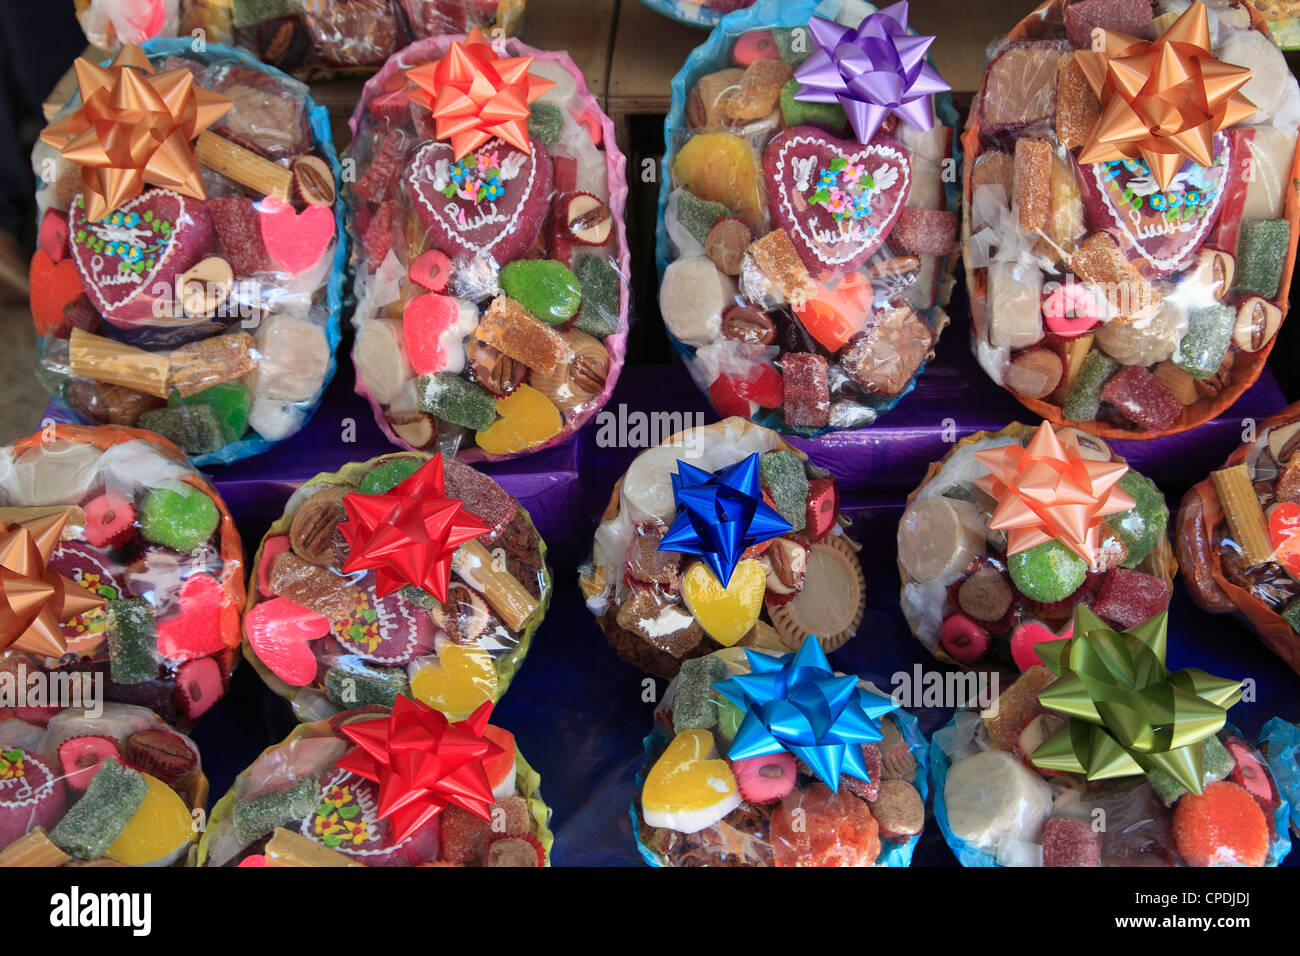 Traditional Mexican sweets and candies, Puebla, Historic Center, Puebla State, Mexico, North America - Stock Image